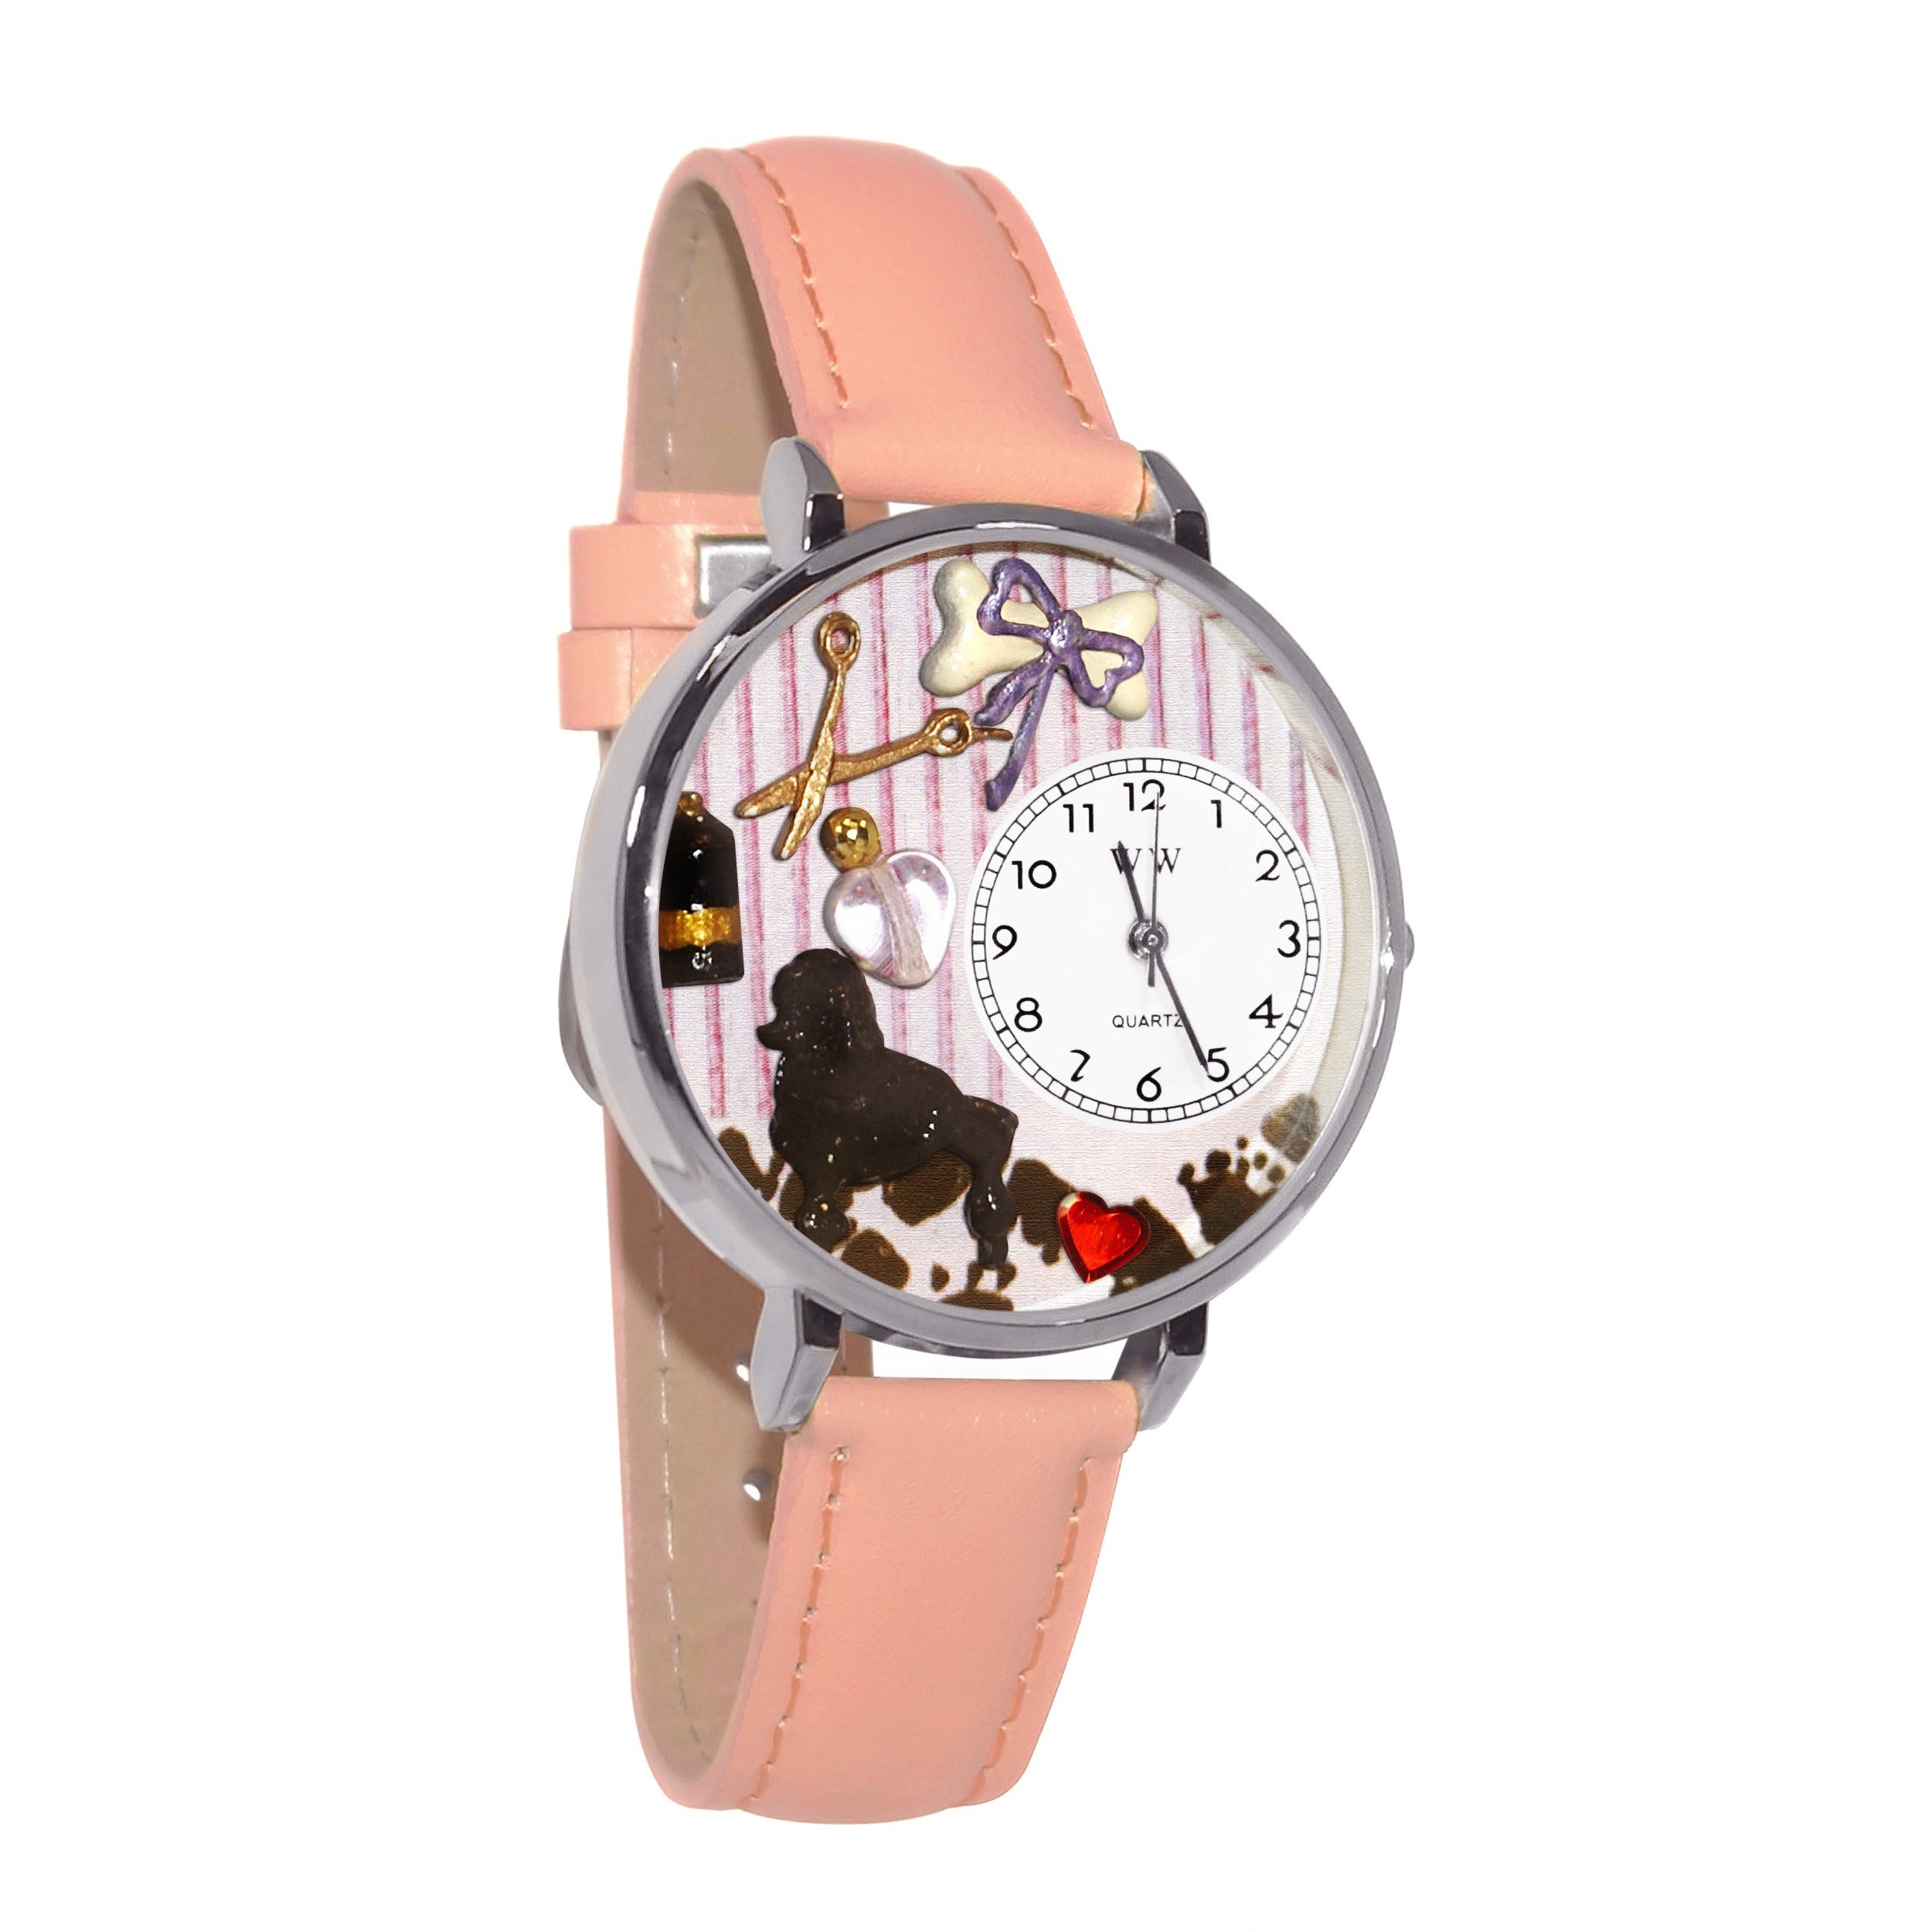 Whimsical Women's Dog Groomer Theme Pink Leather Watch, S...